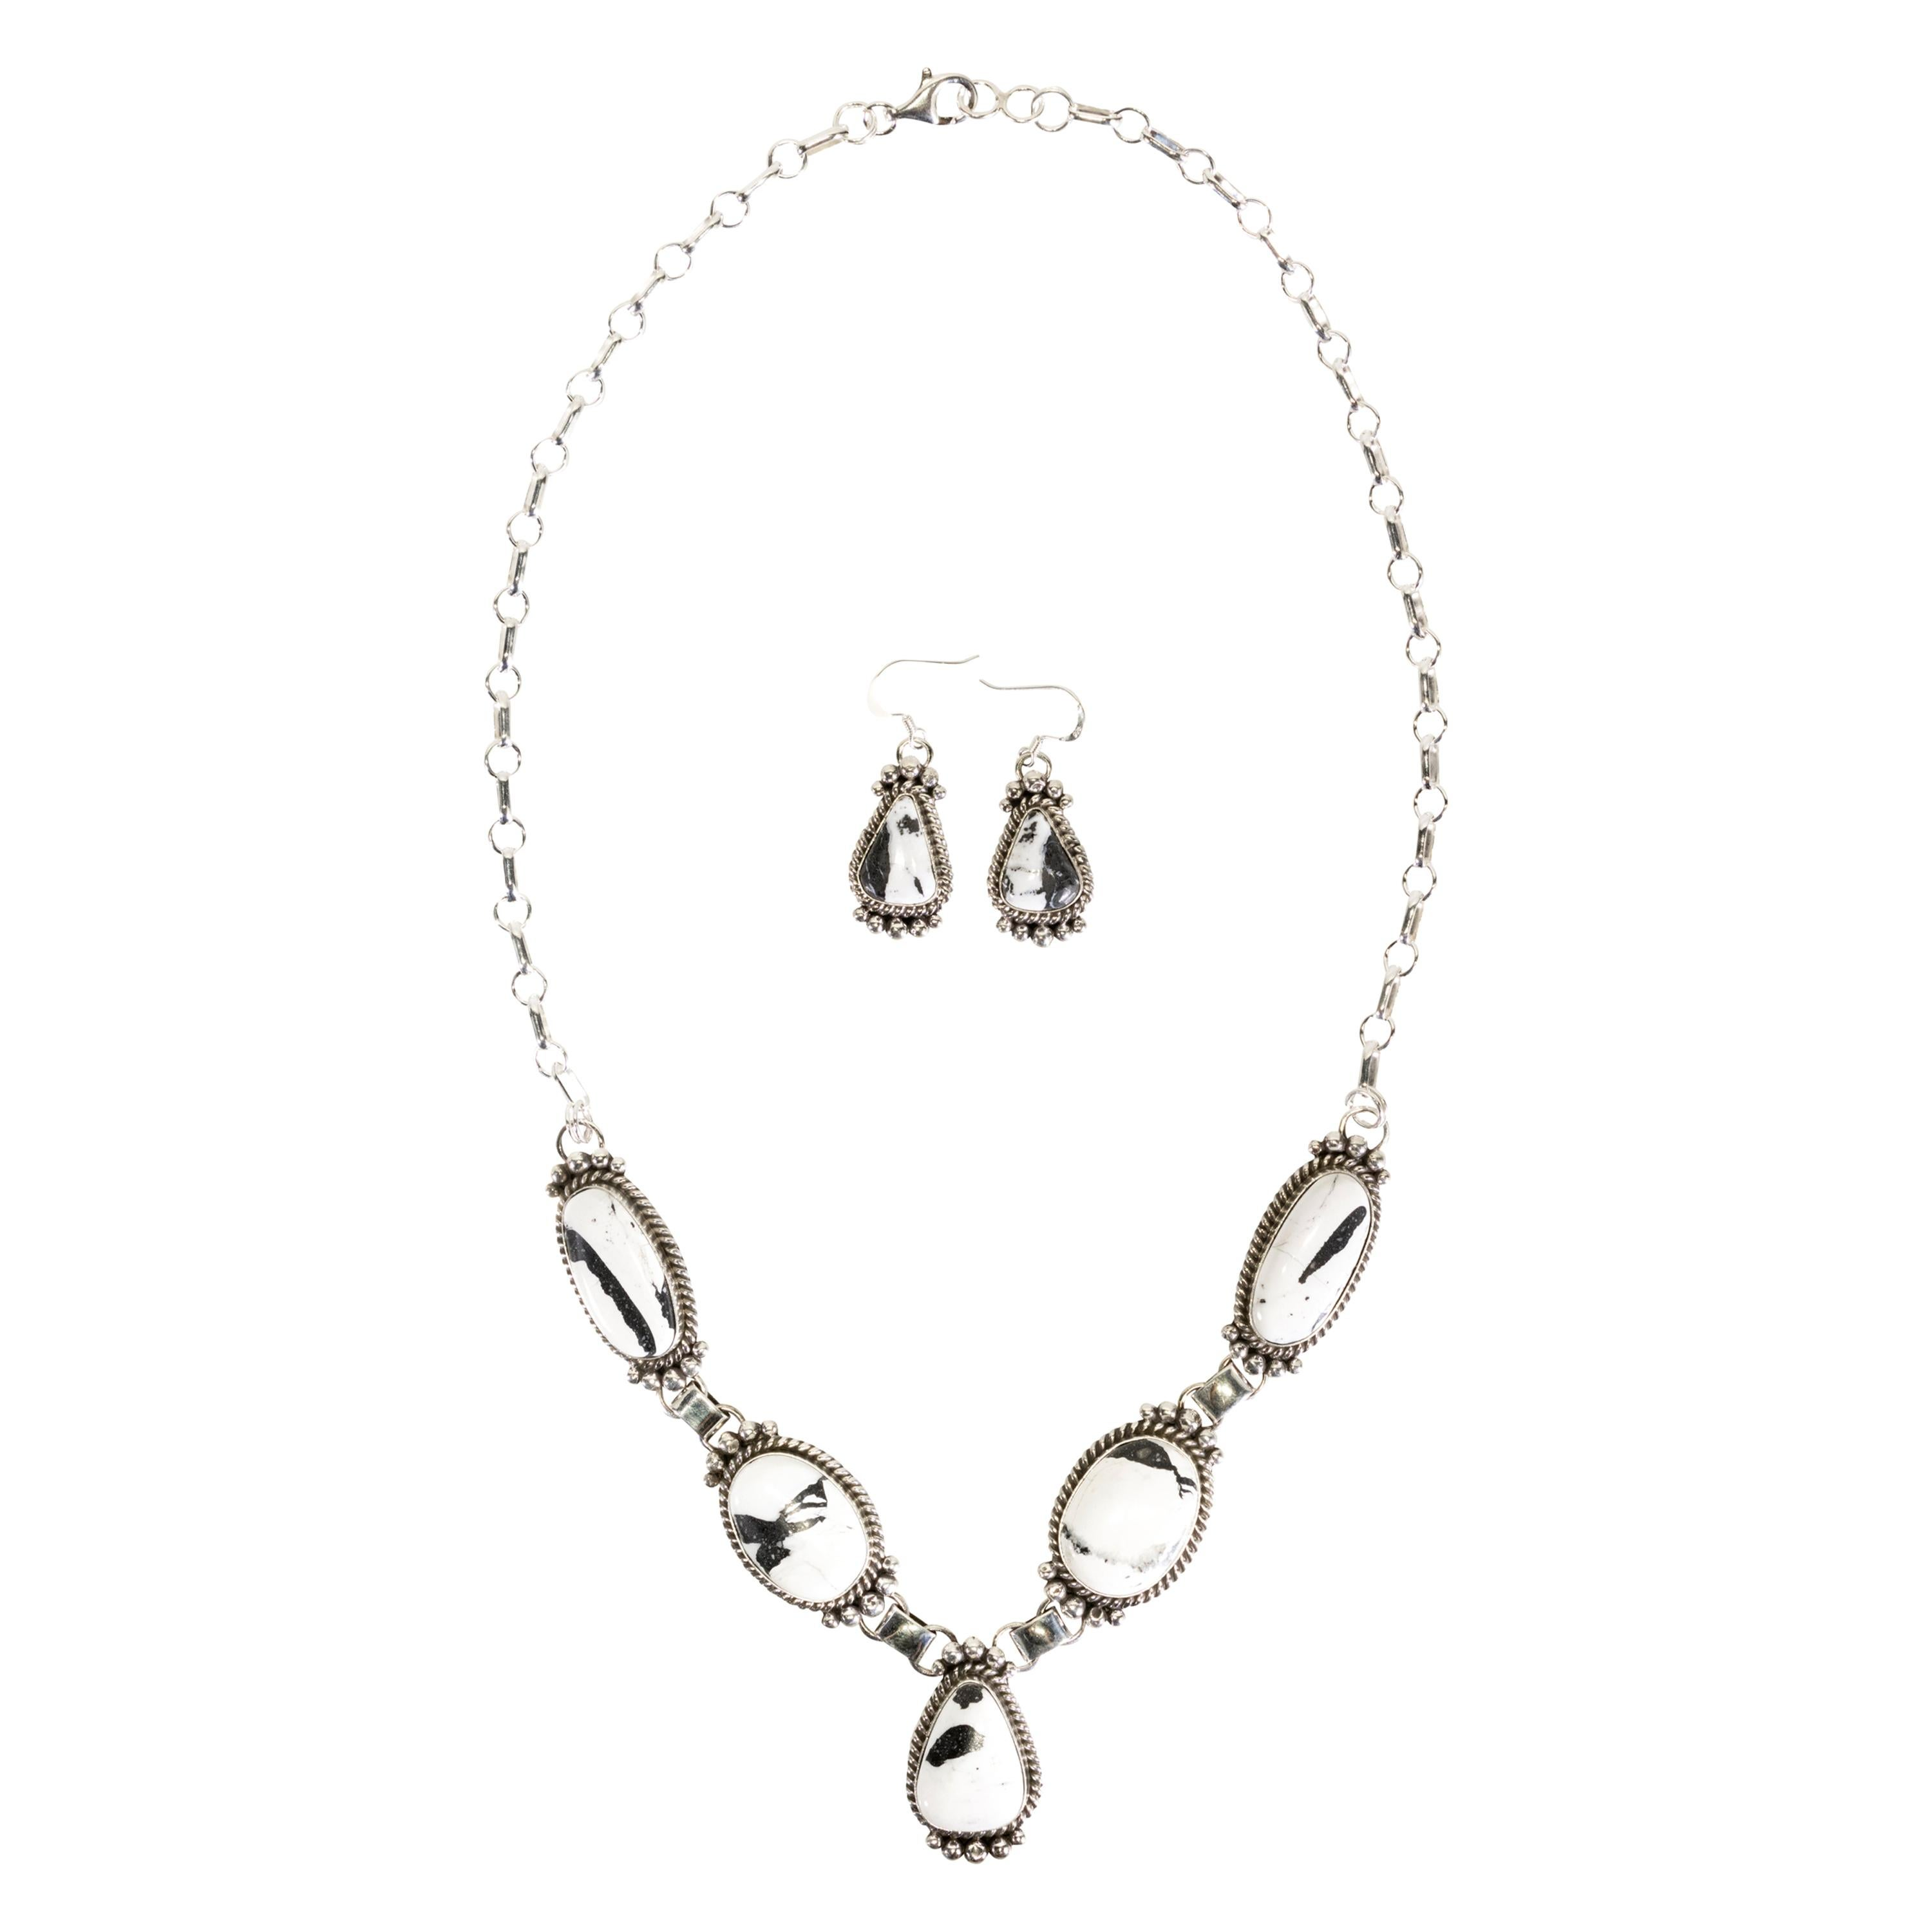 White Buffalo Turquoise Necklace and Earrings Set